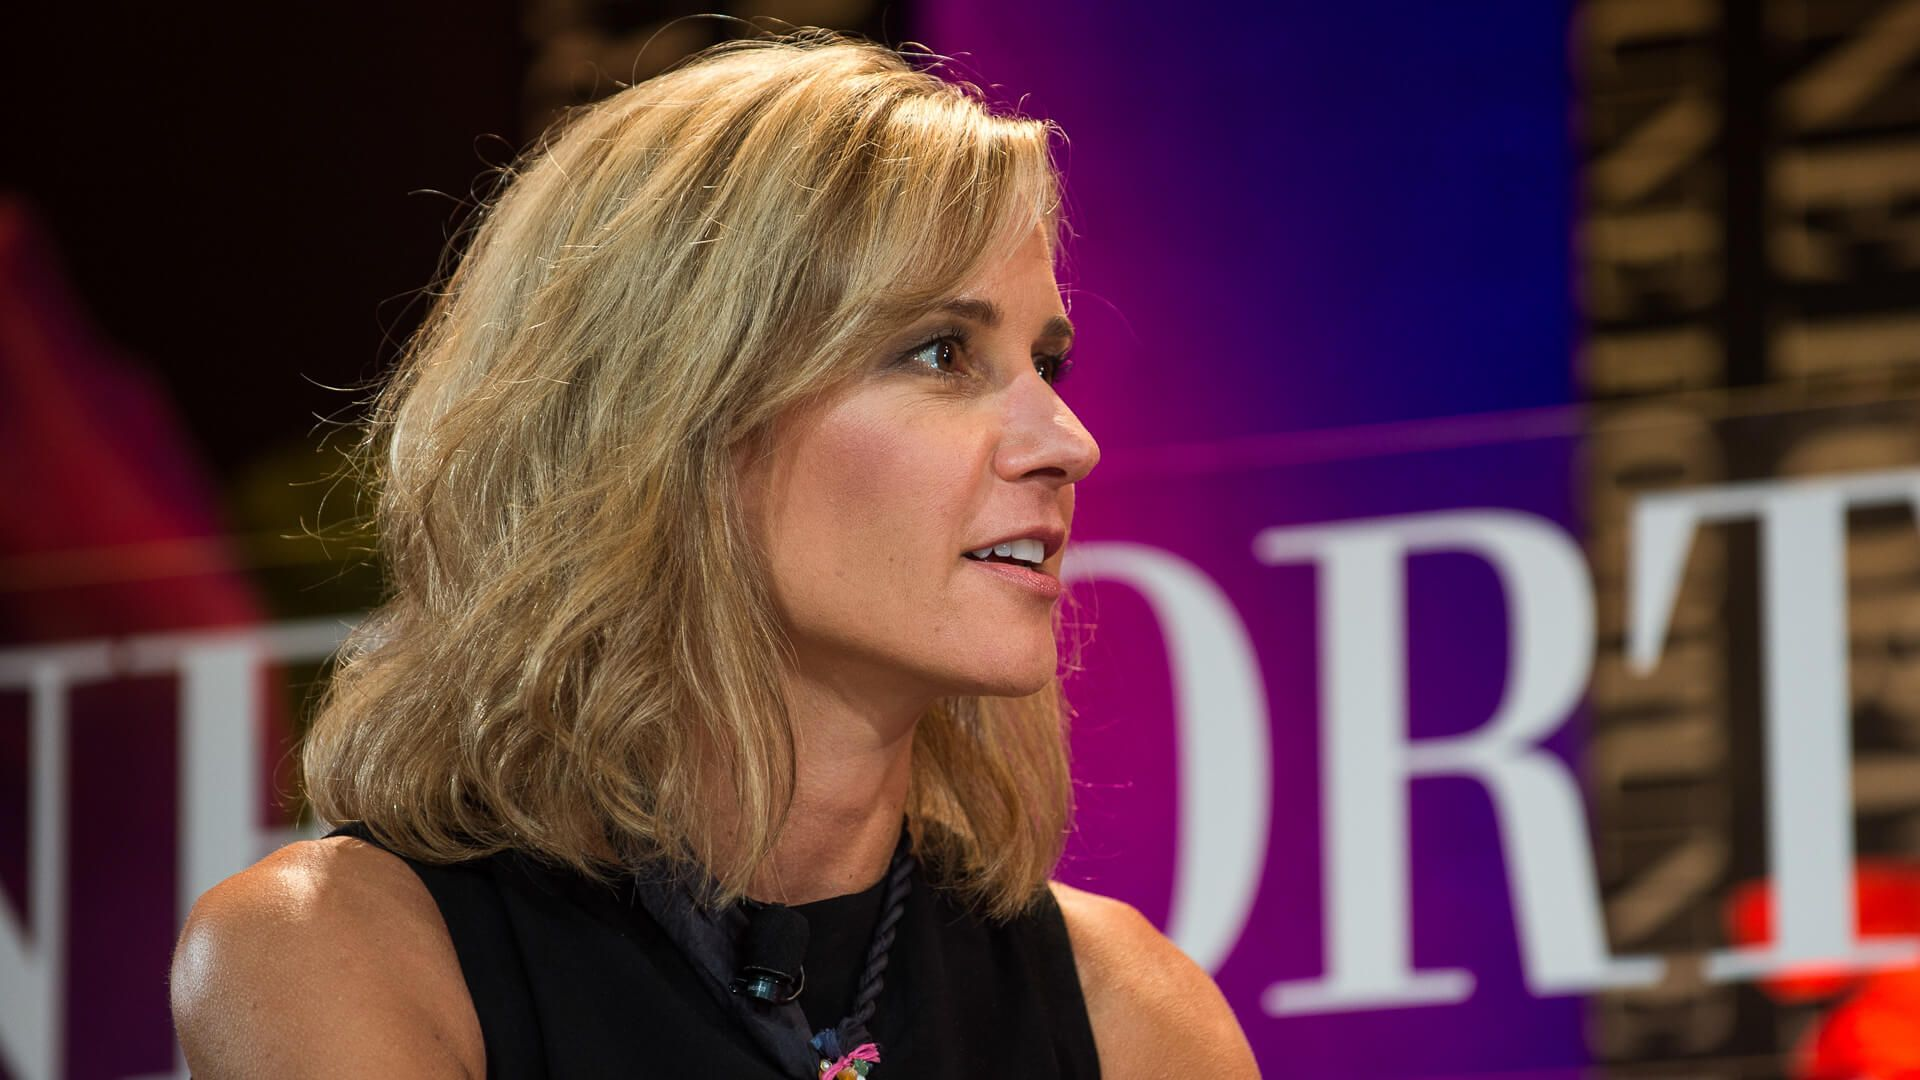 Kohl's CEO Michelle Gass